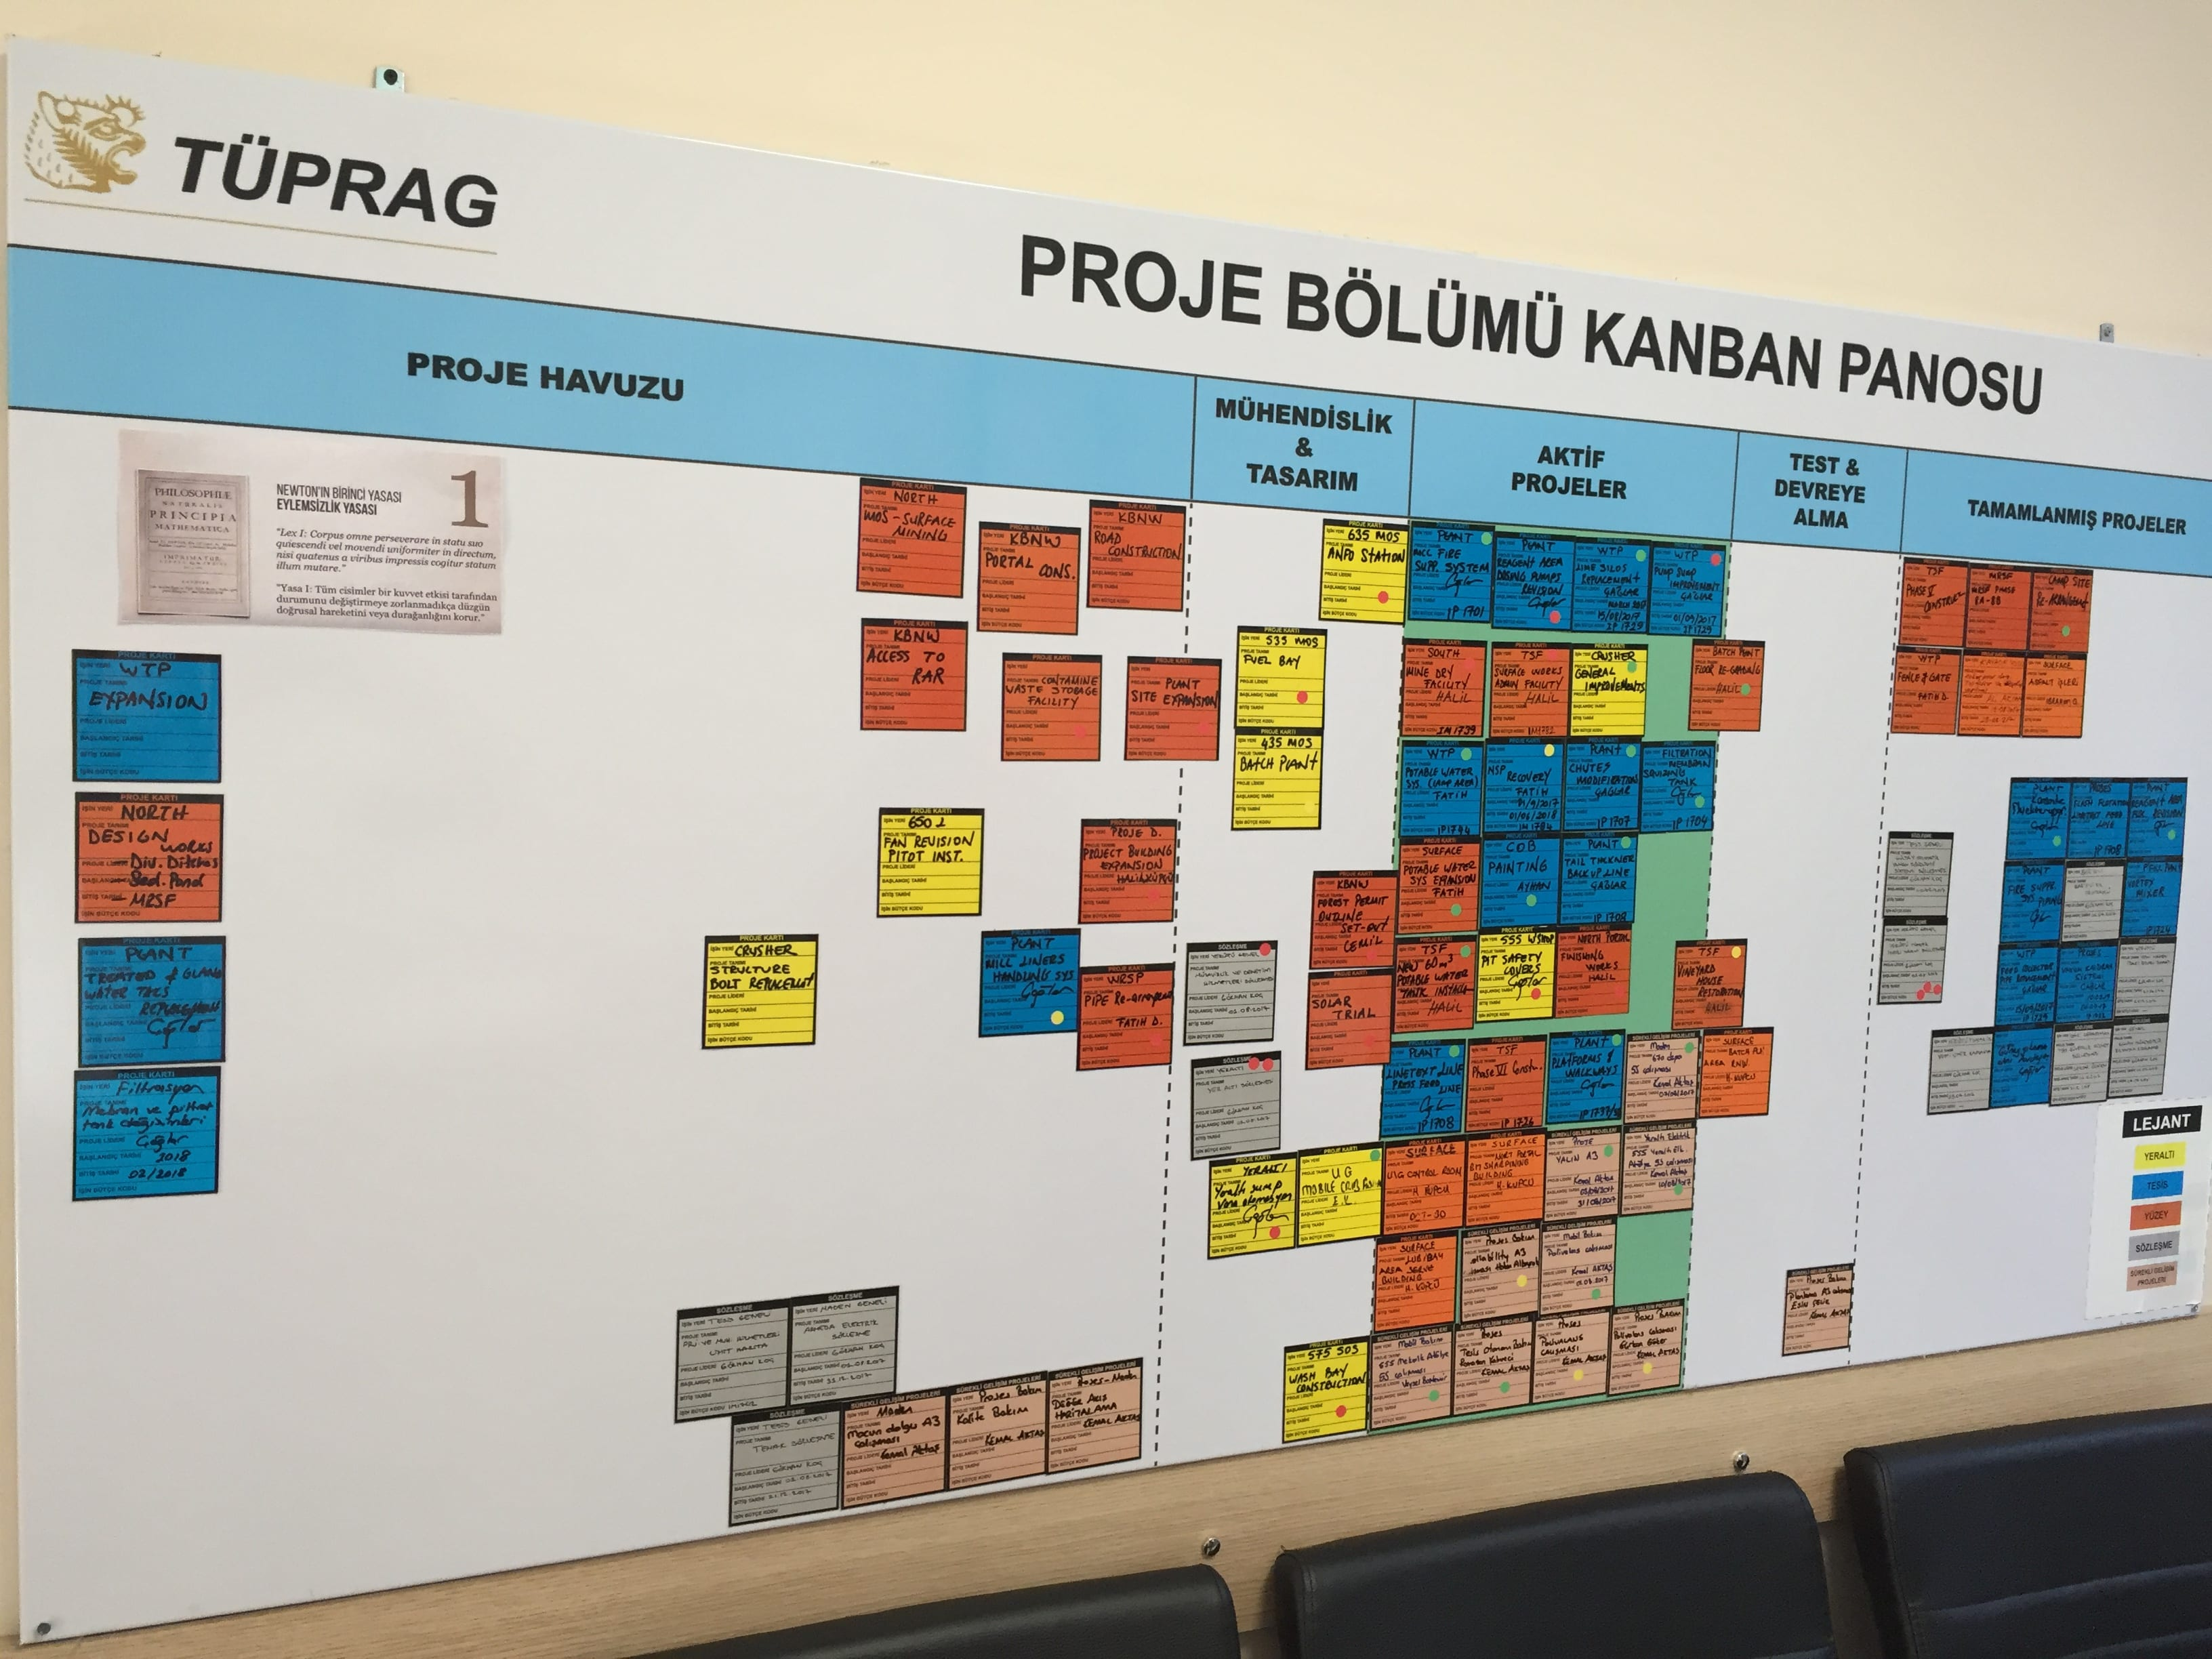 Problem solving board lean management